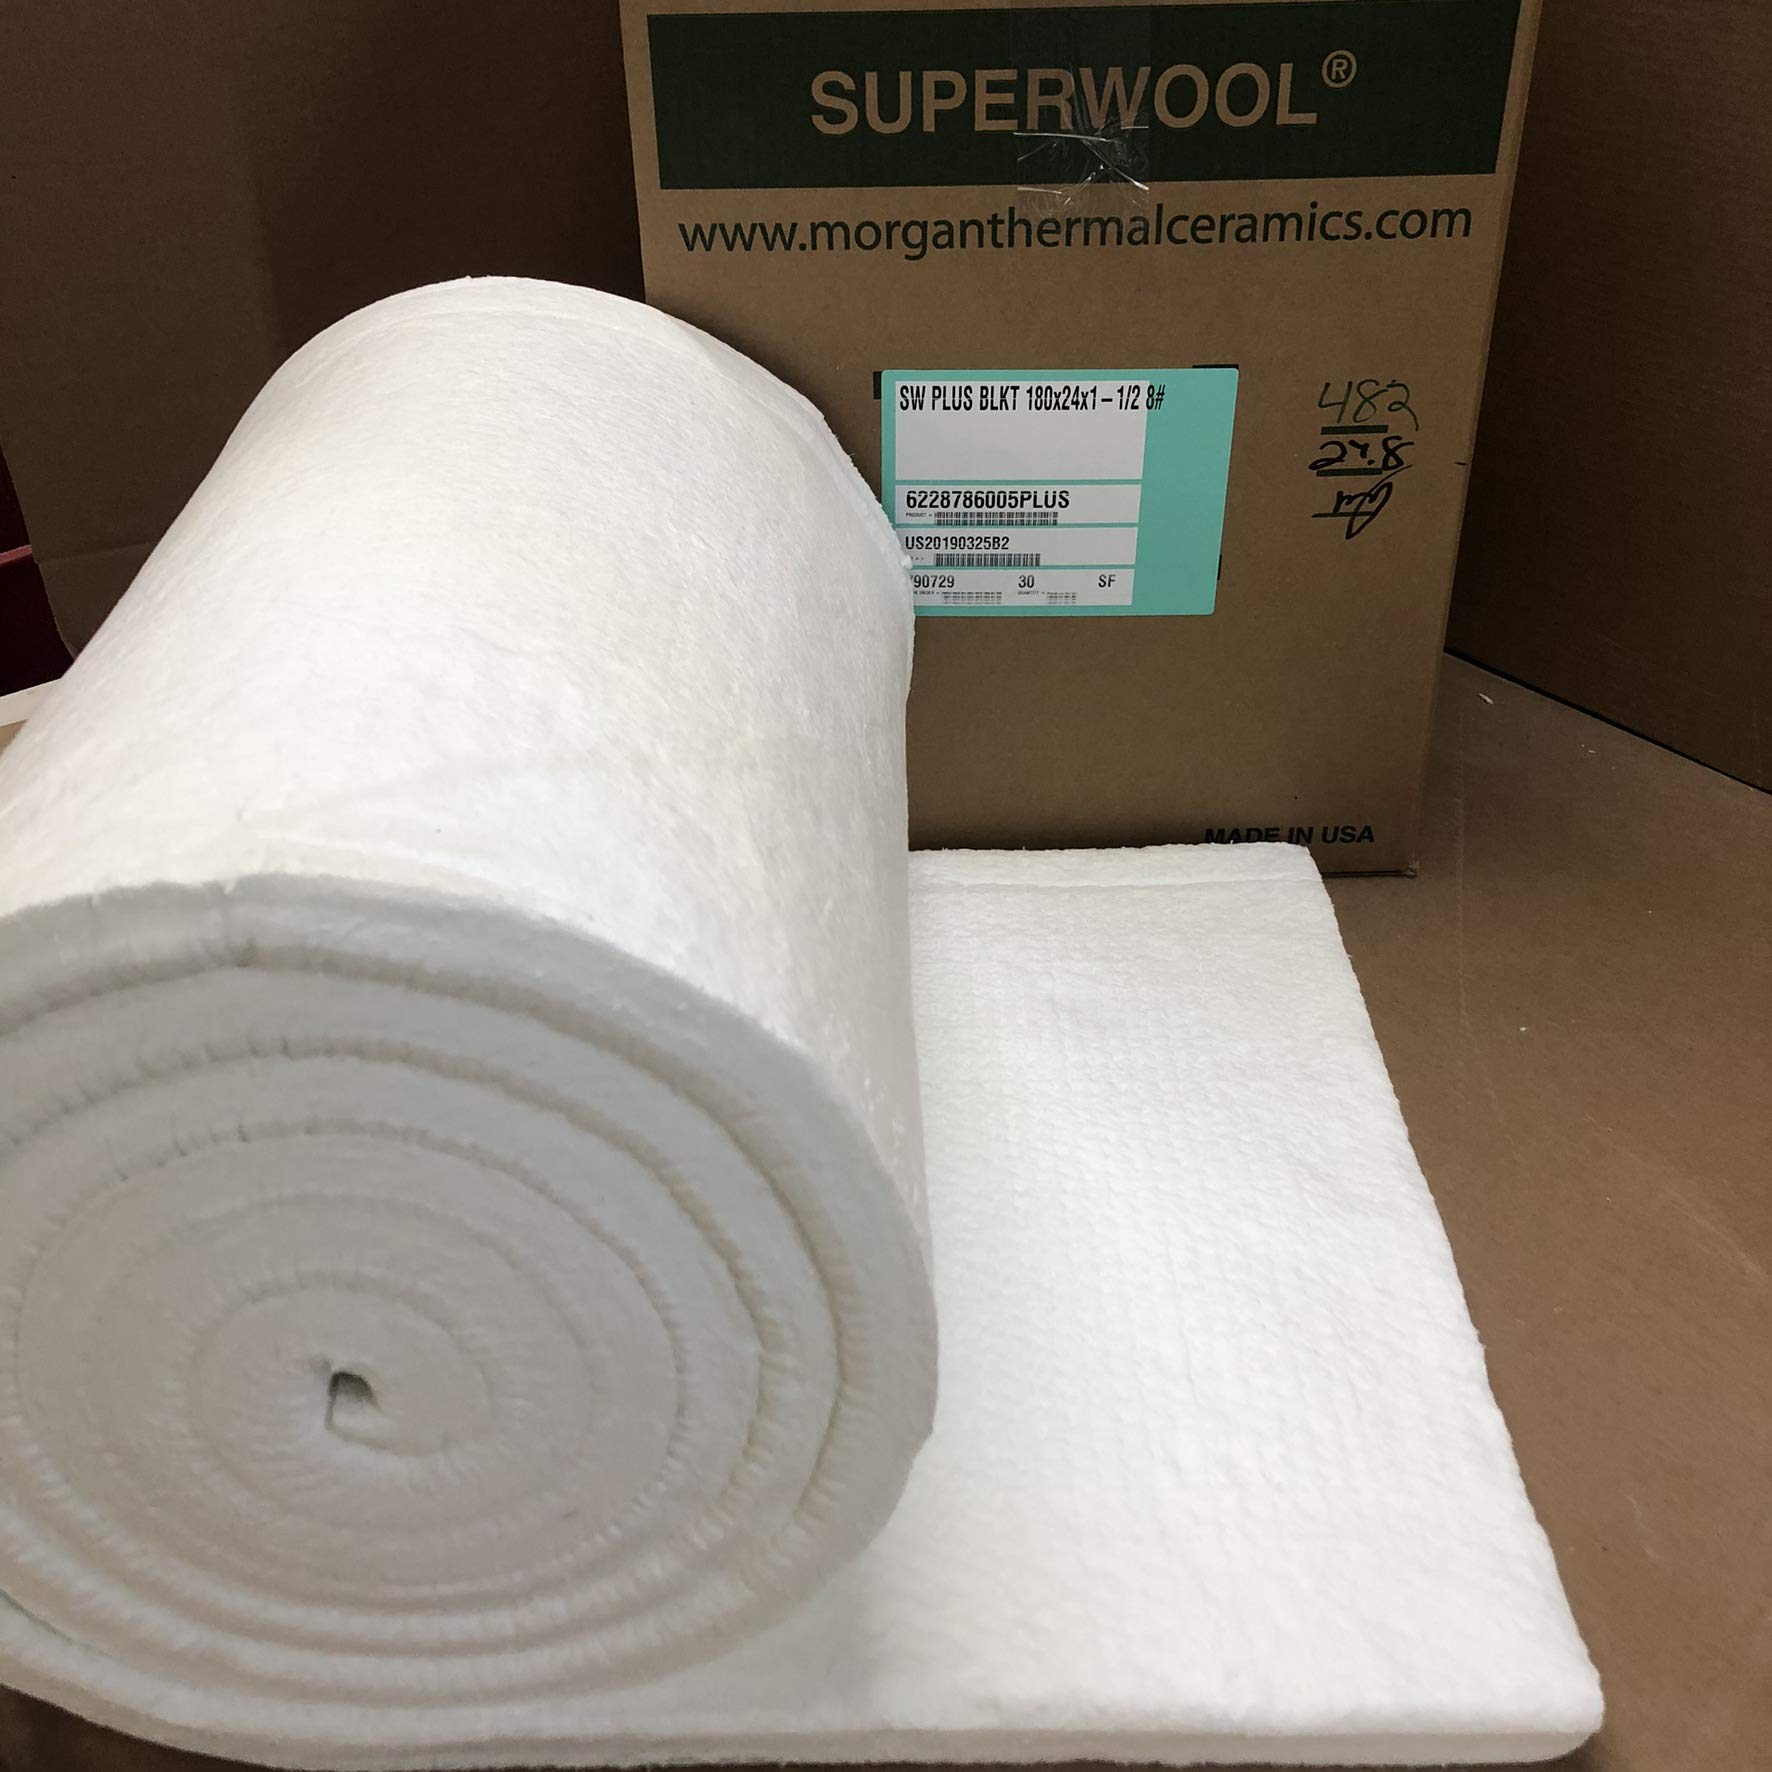 Lynn Manufacturing 1.5'' Thick, Superwool Plus Blanket, Morgan Thermal Ceramics, 2100F Rated, 8 Lb. Density, 24'' Wide, 15 Ft. Long by Lynn Manufacturing